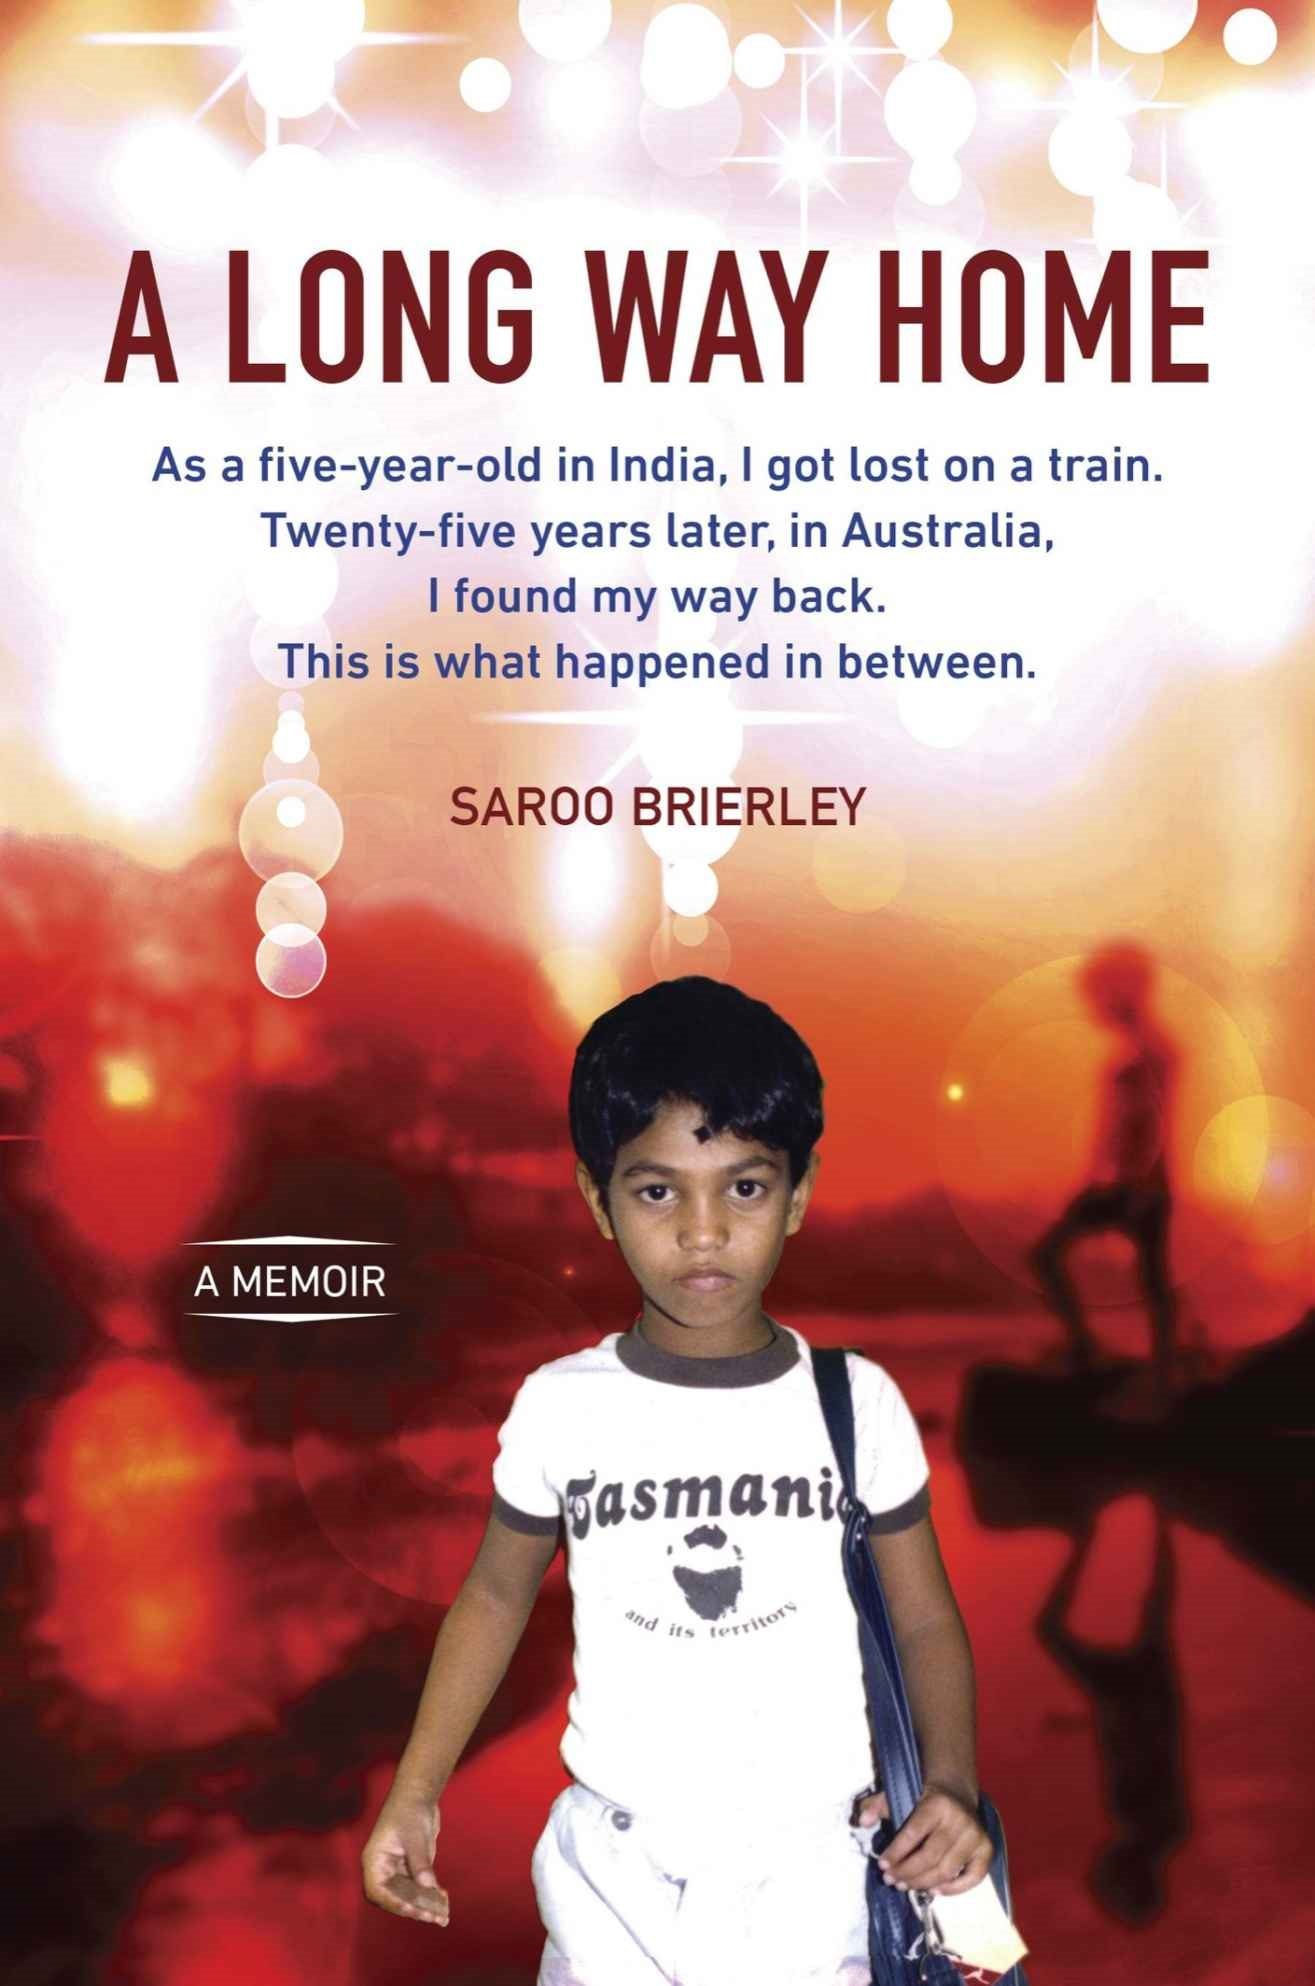 A Long Way Home: A Memoir - Saroo Brierley [kindle] [mobi]